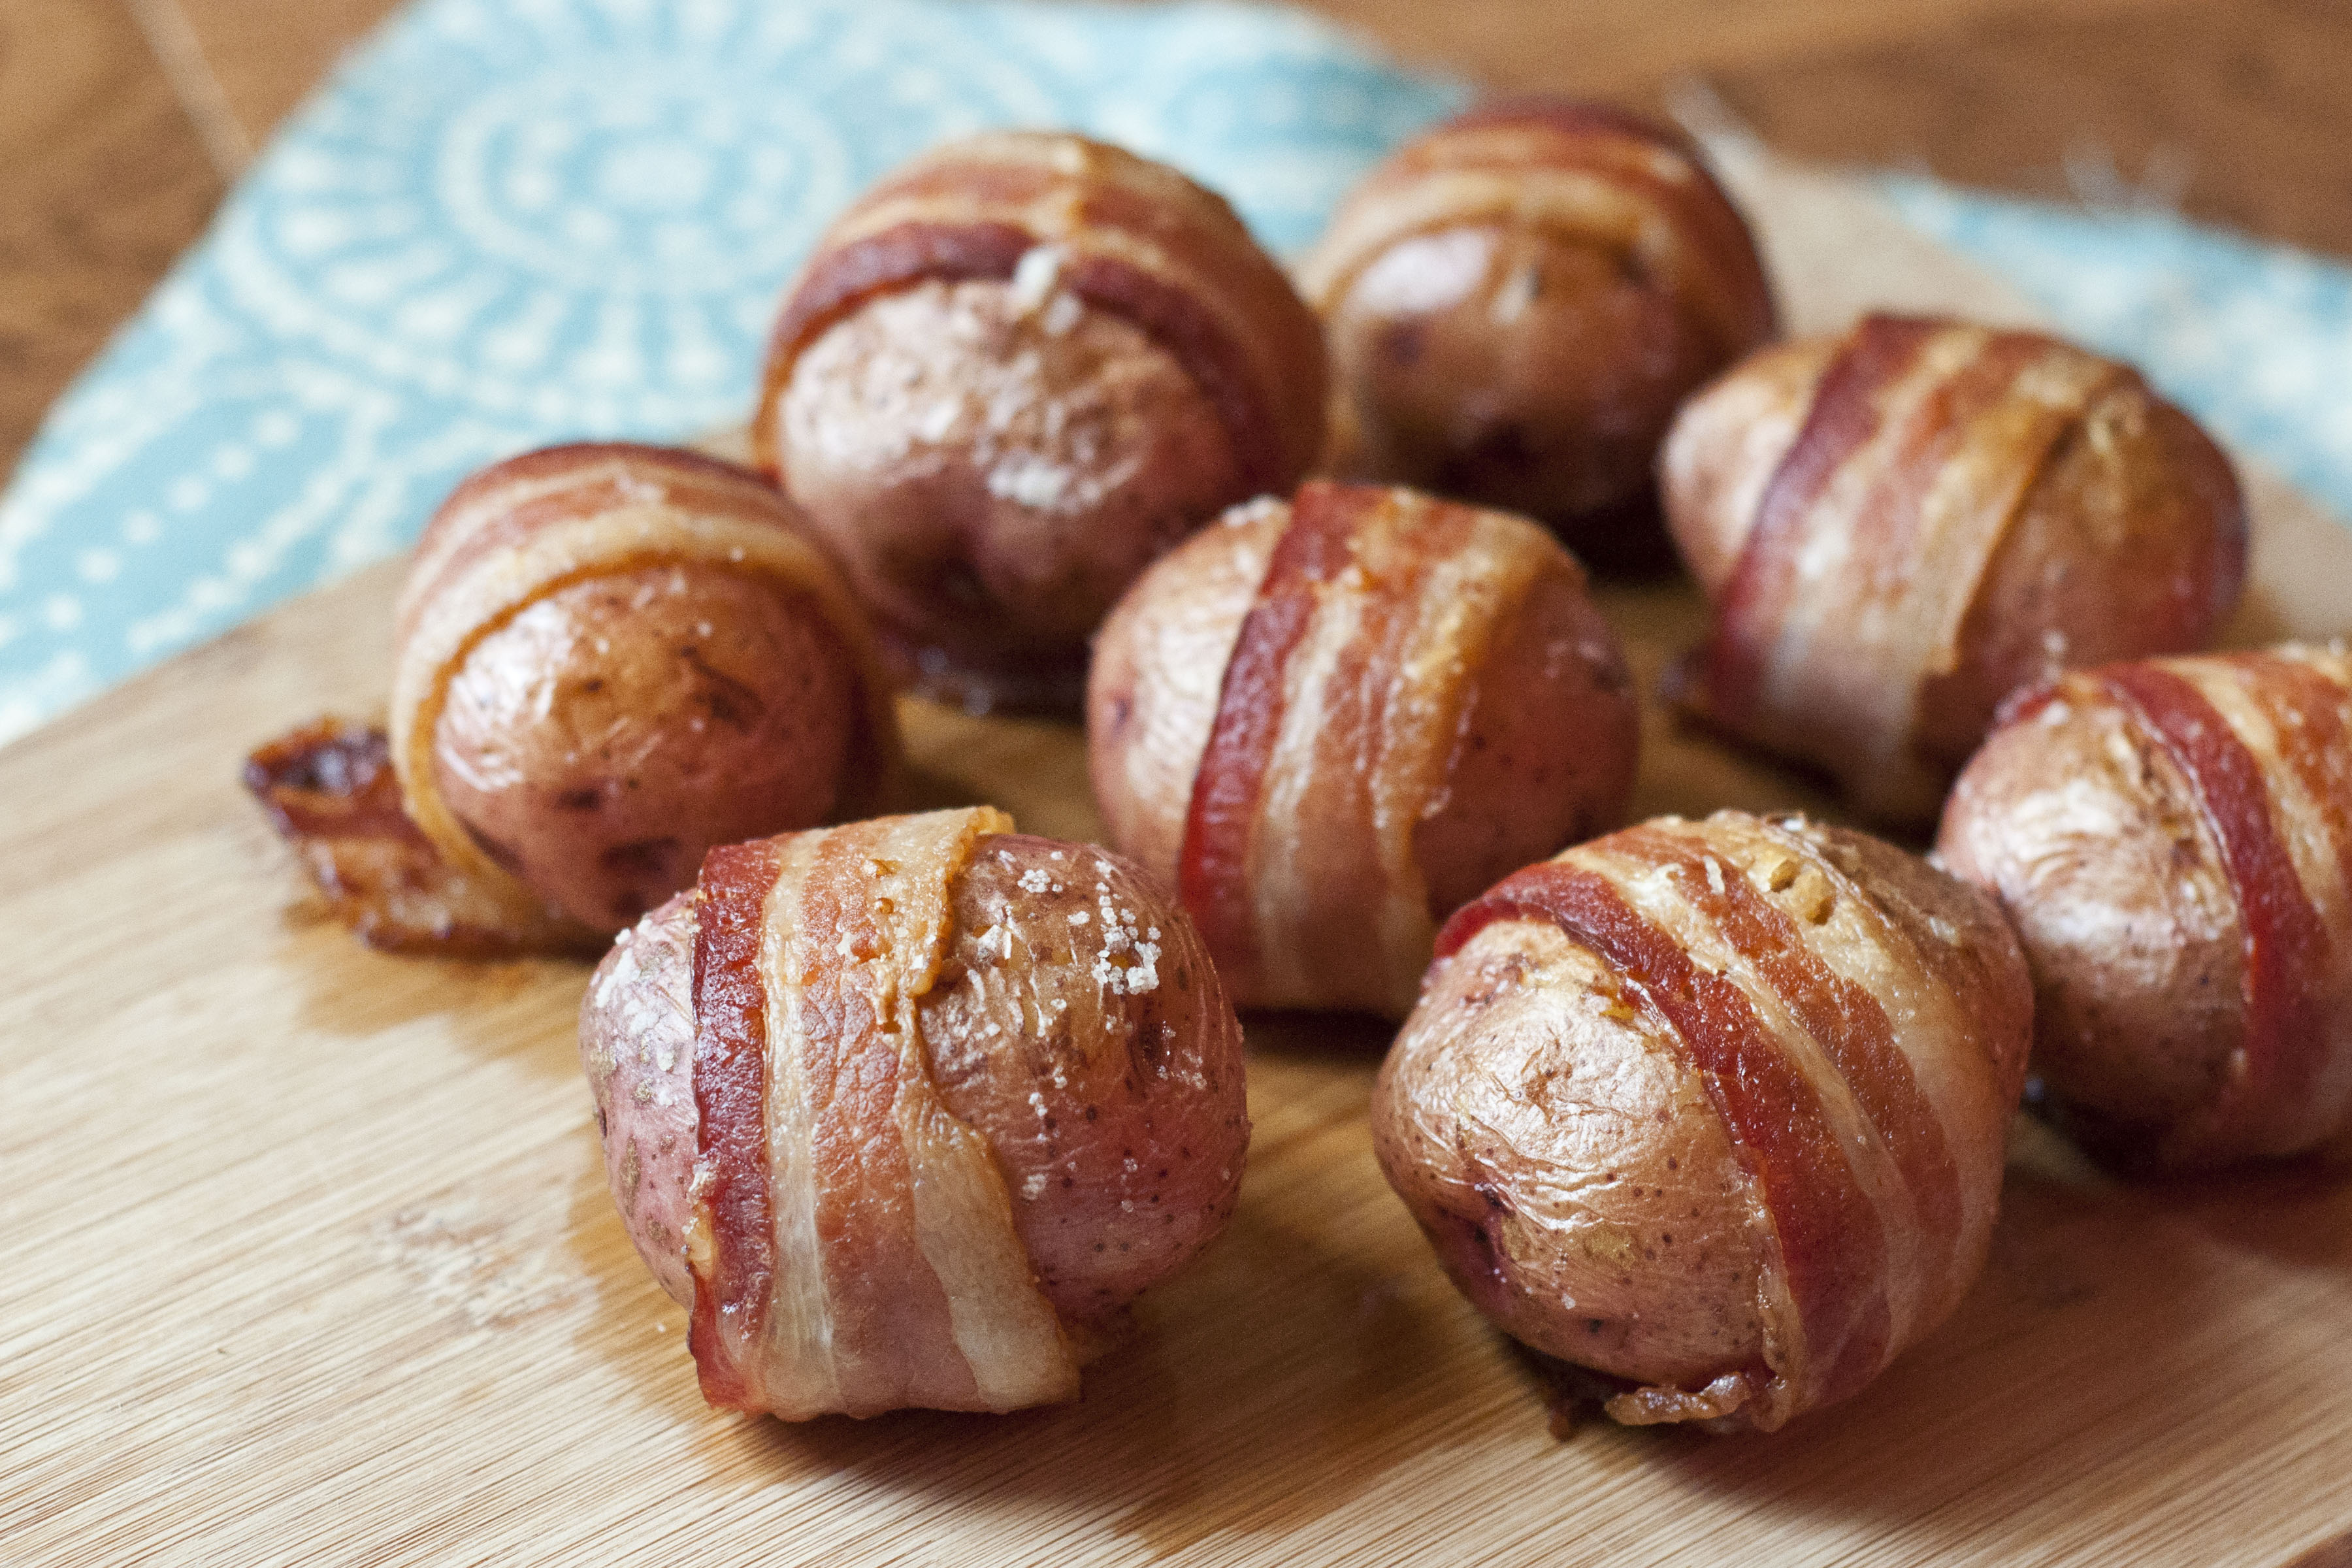 This image shows steamy tender red potatoes wrapped with crispy Petit Jean Bacon on a wooden cutting board, ready to eat.